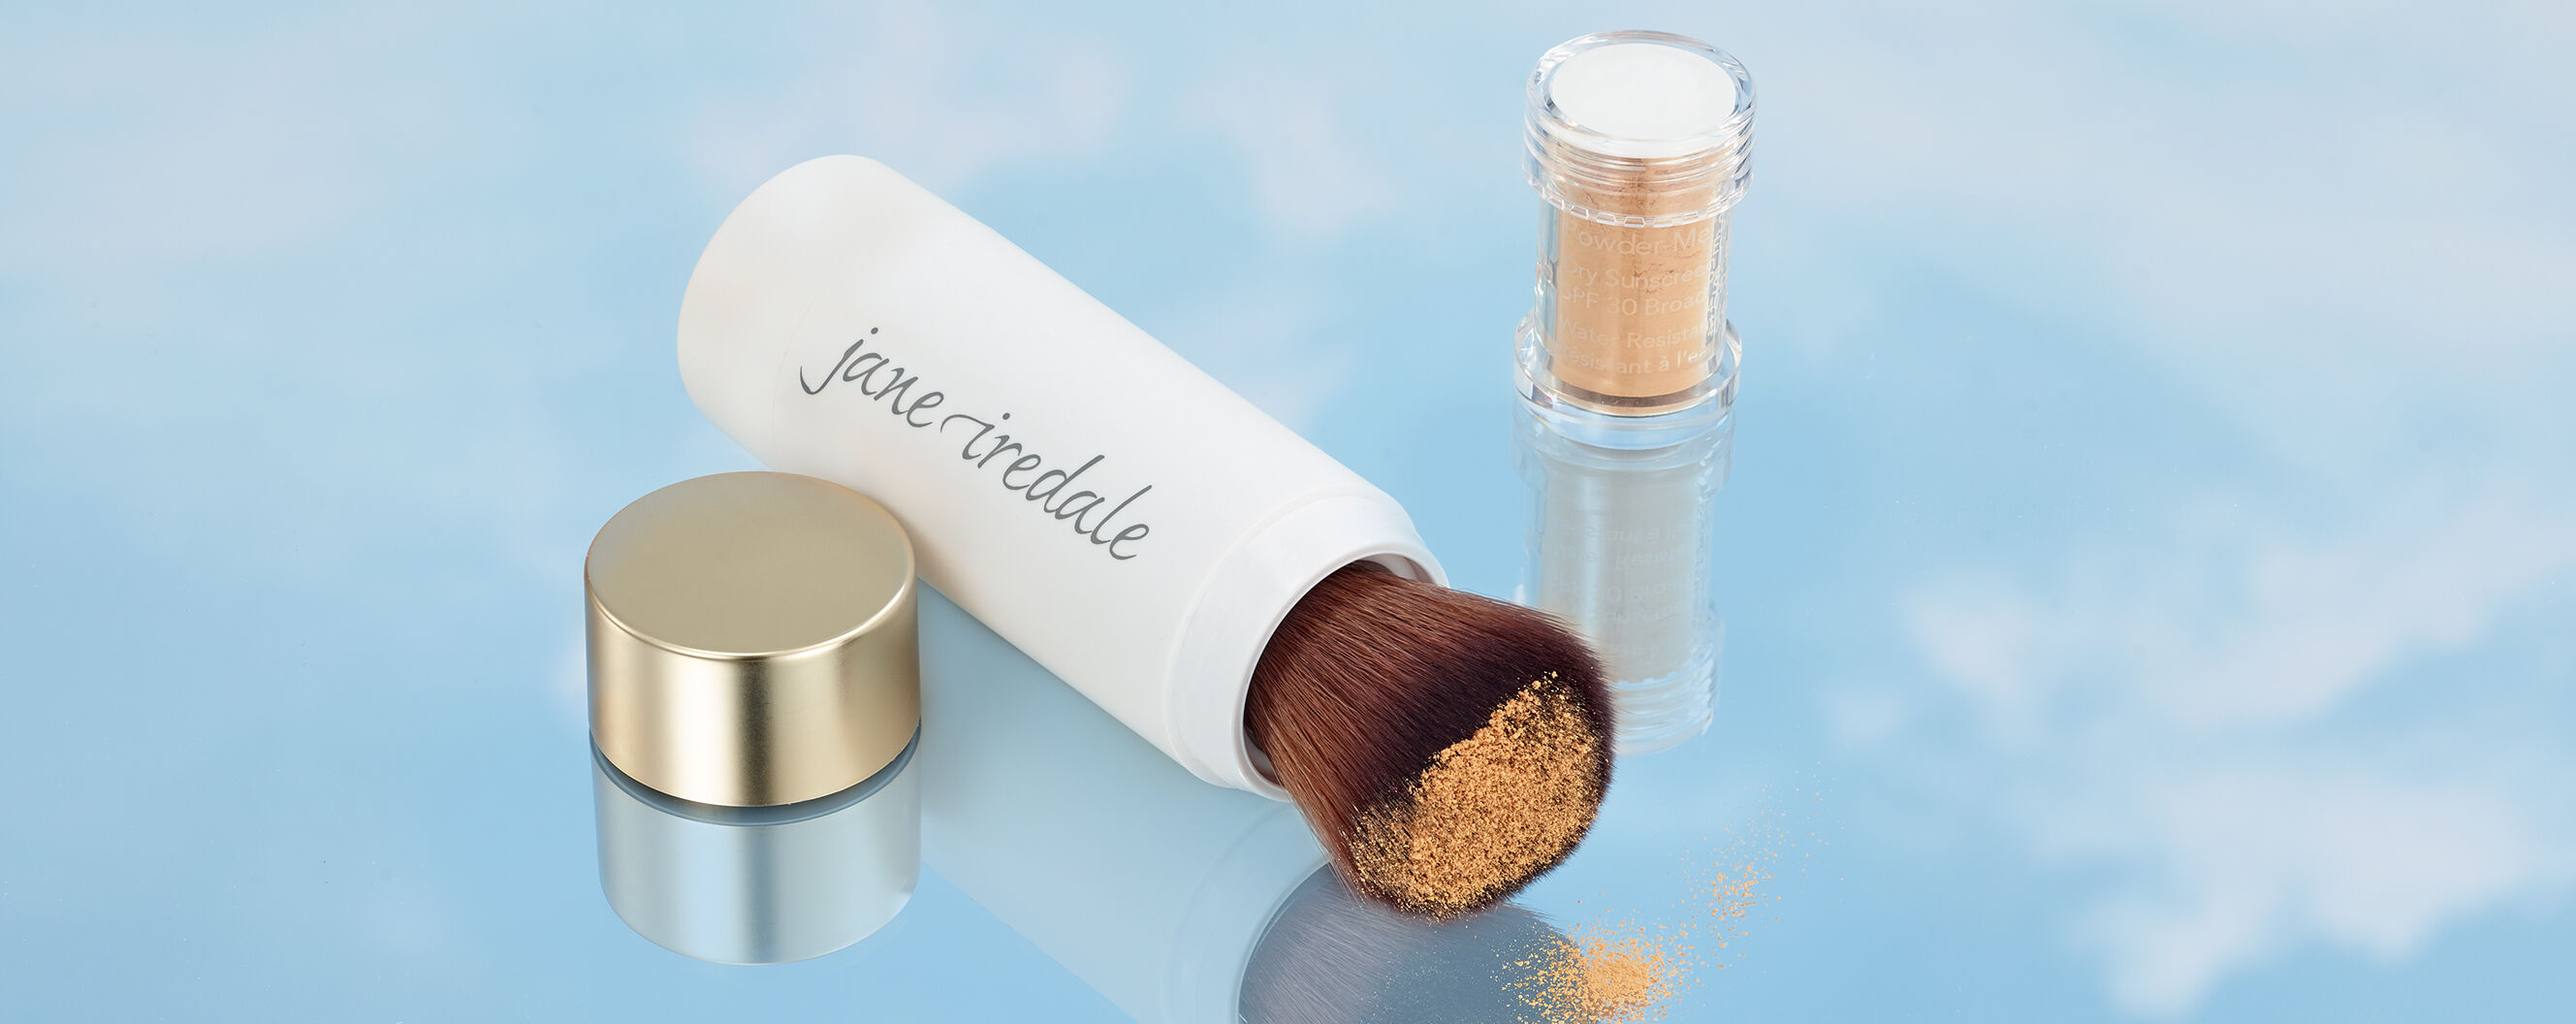 NEW jane iredale Powder Me New Zealand Stockists